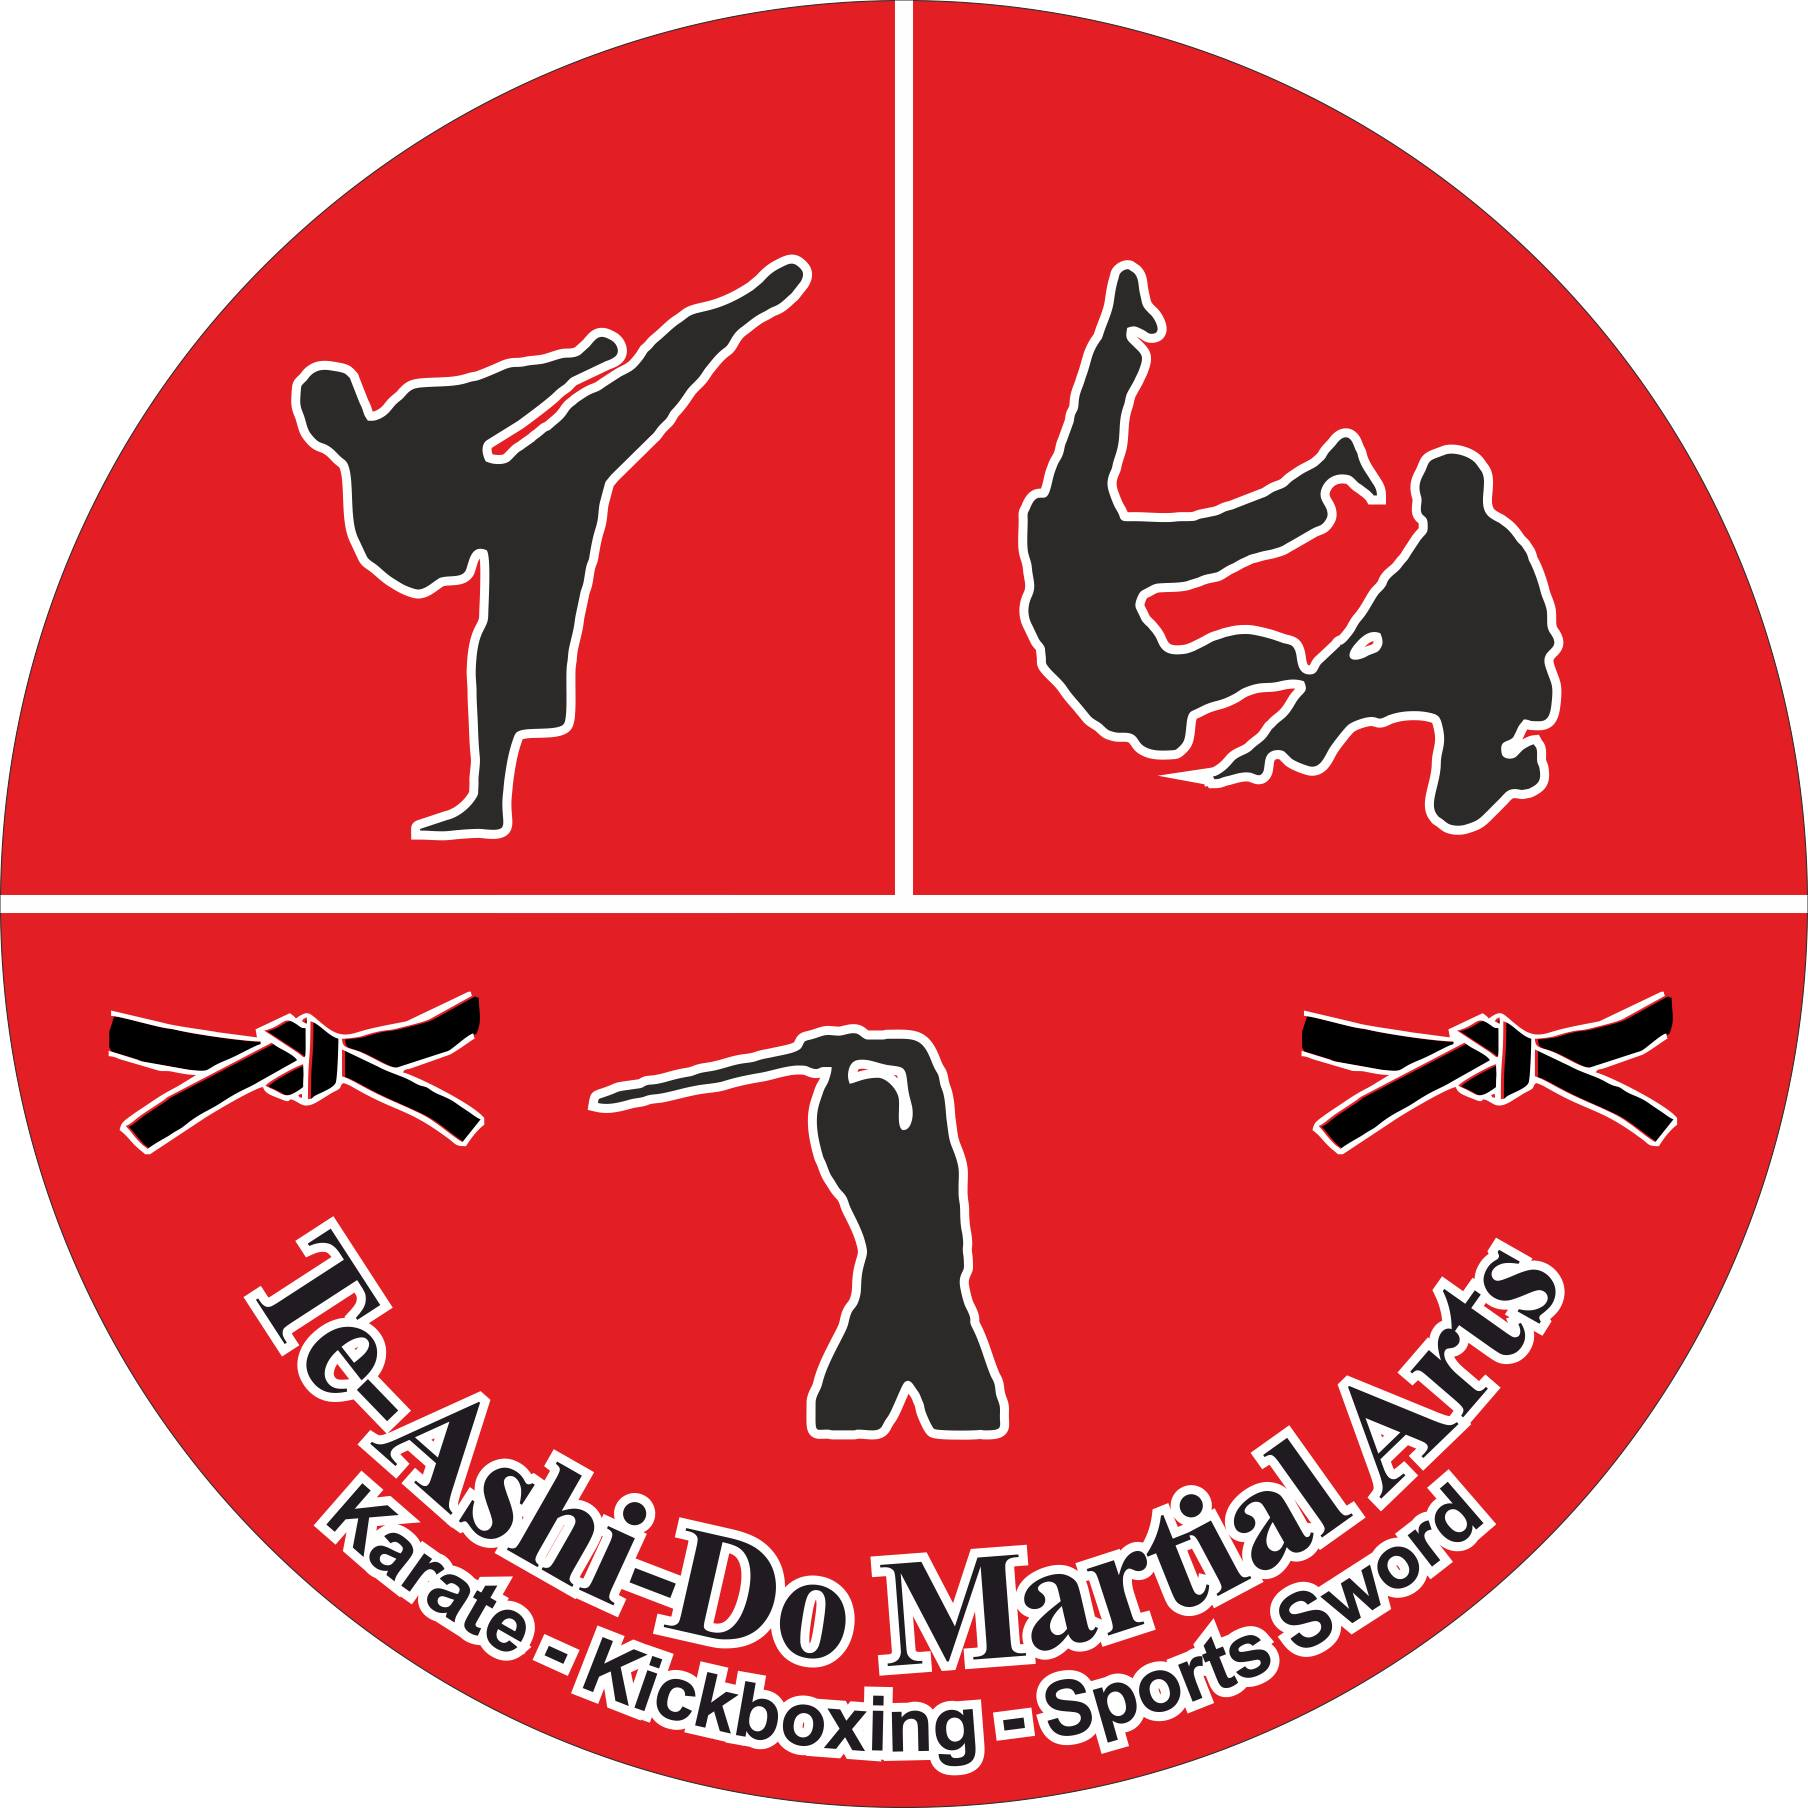 Te-Ashi-Do Martial Arts Online